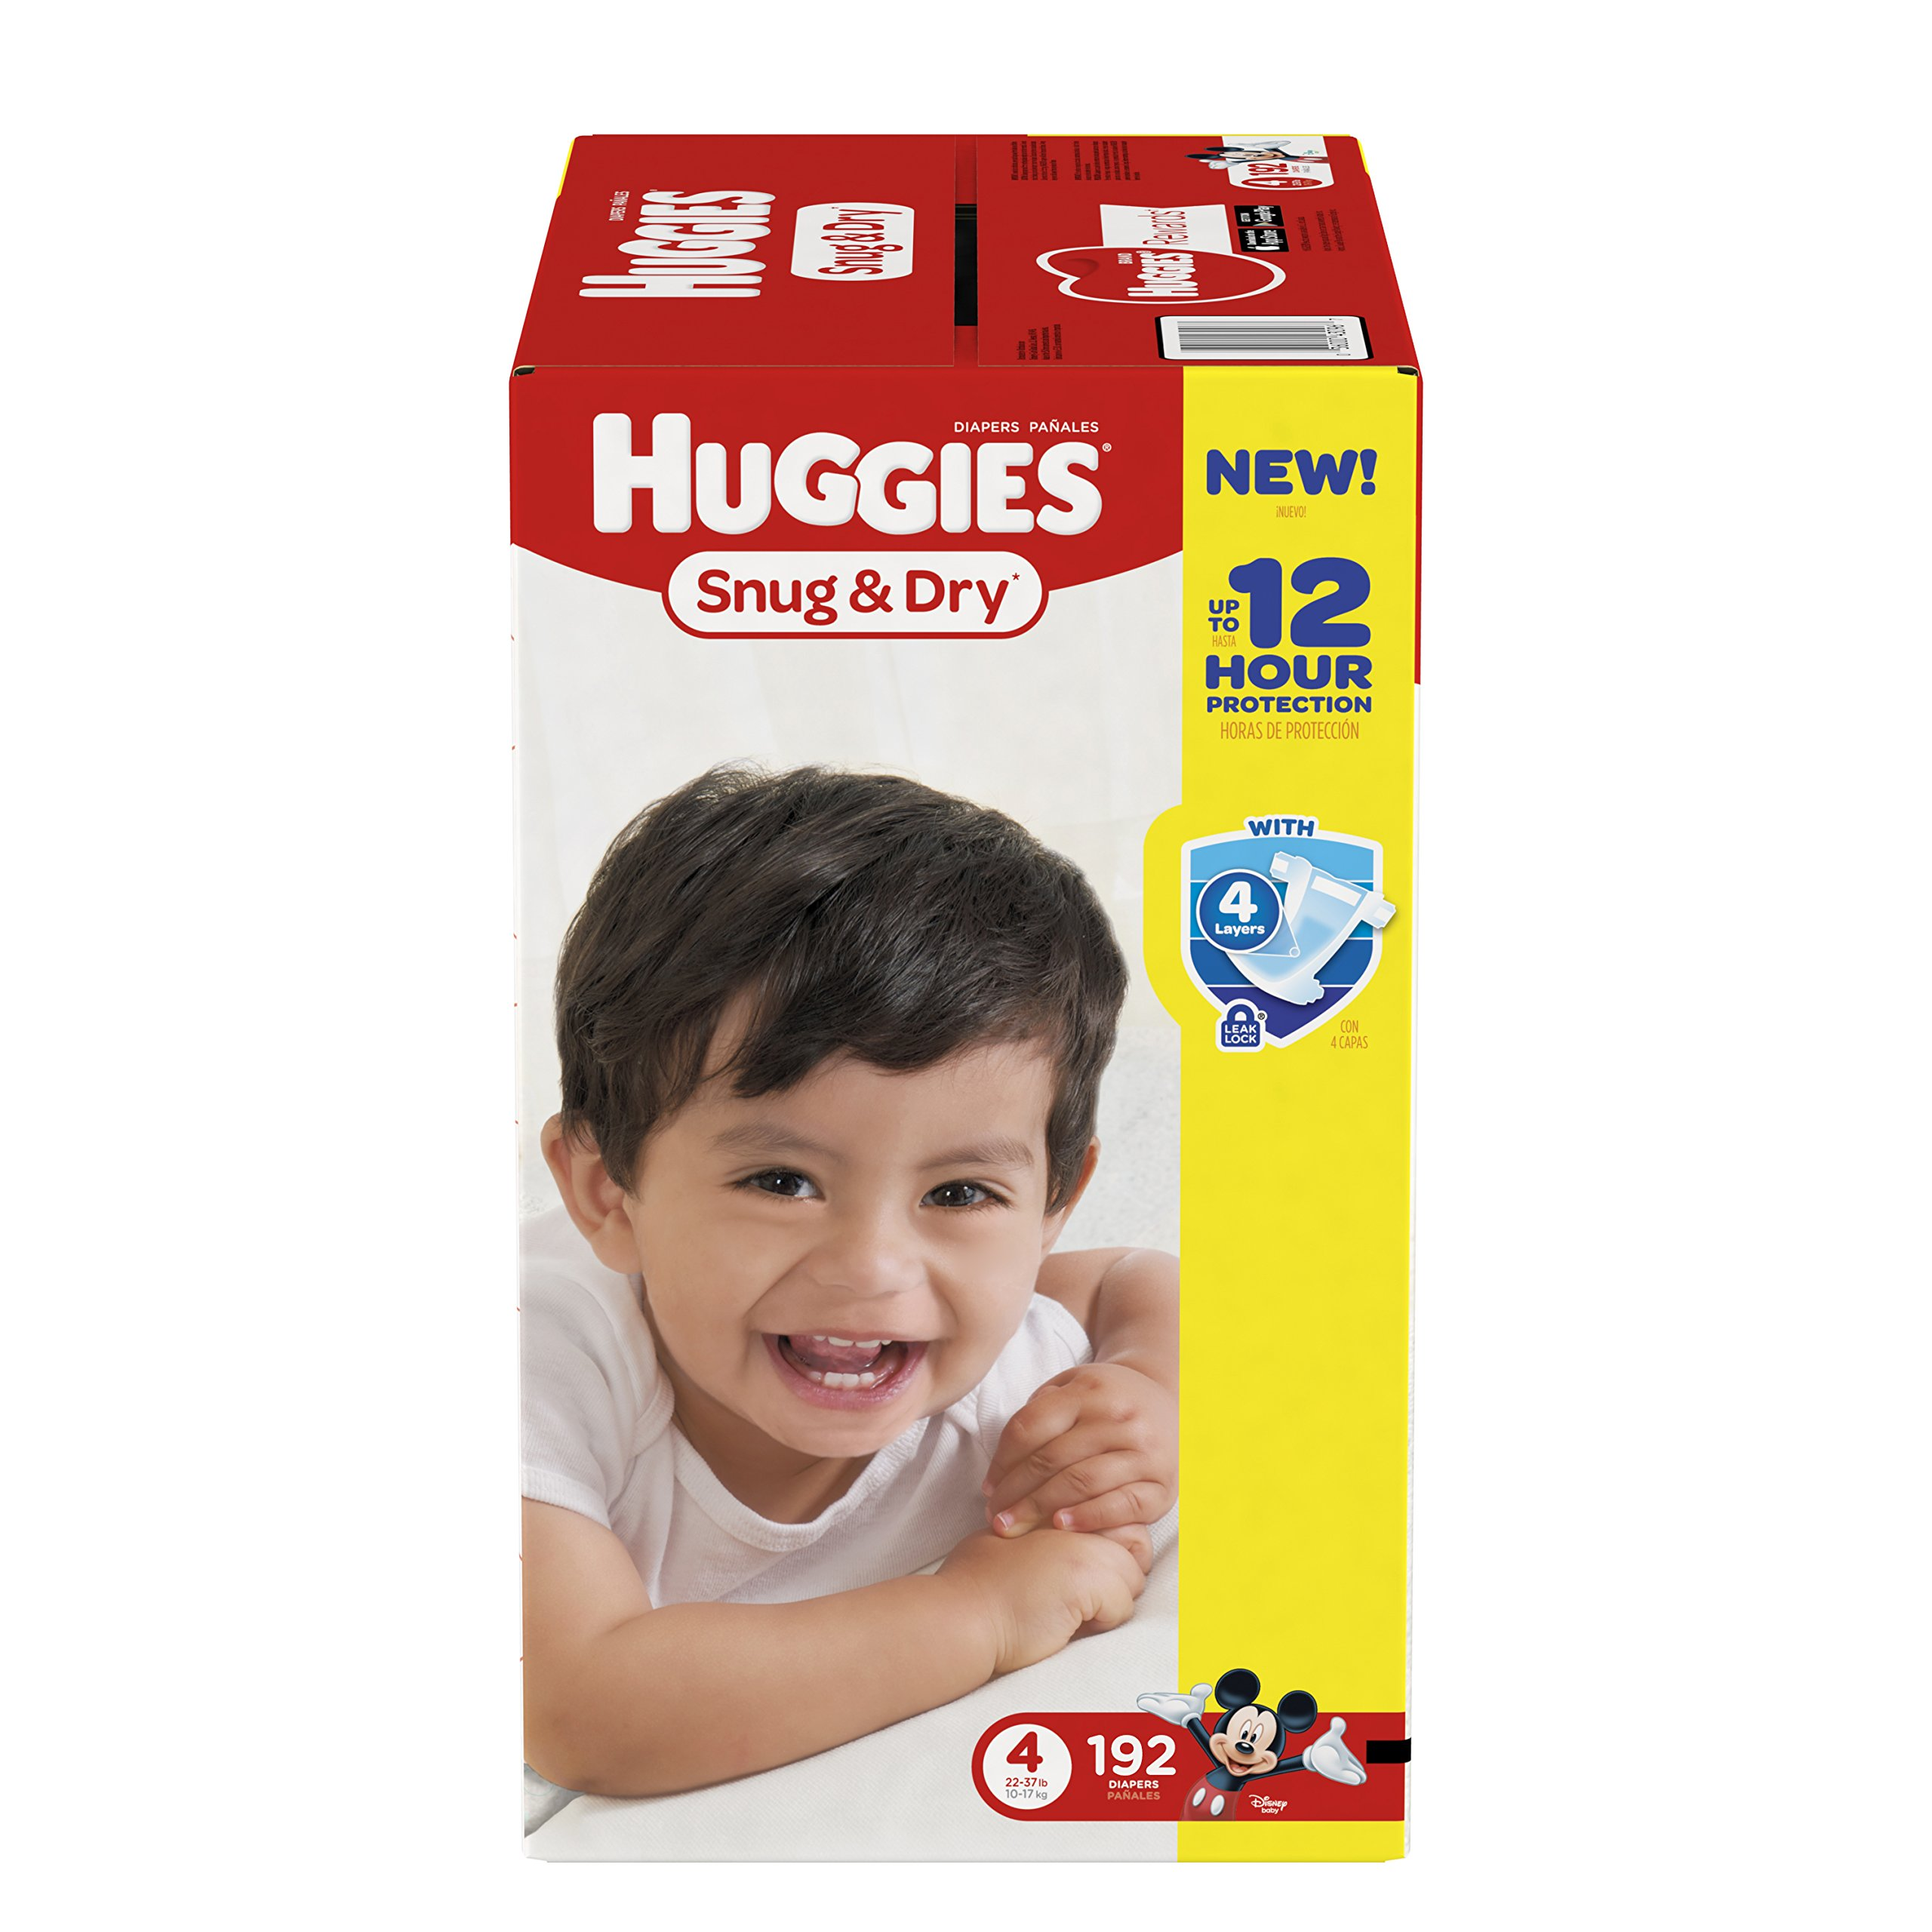 HUGGIES Snug & Dry Diapers, Size 4, for 22-37 lbs., One Month Supply (192 Count) of Baby Diapers, Packaging May Vary